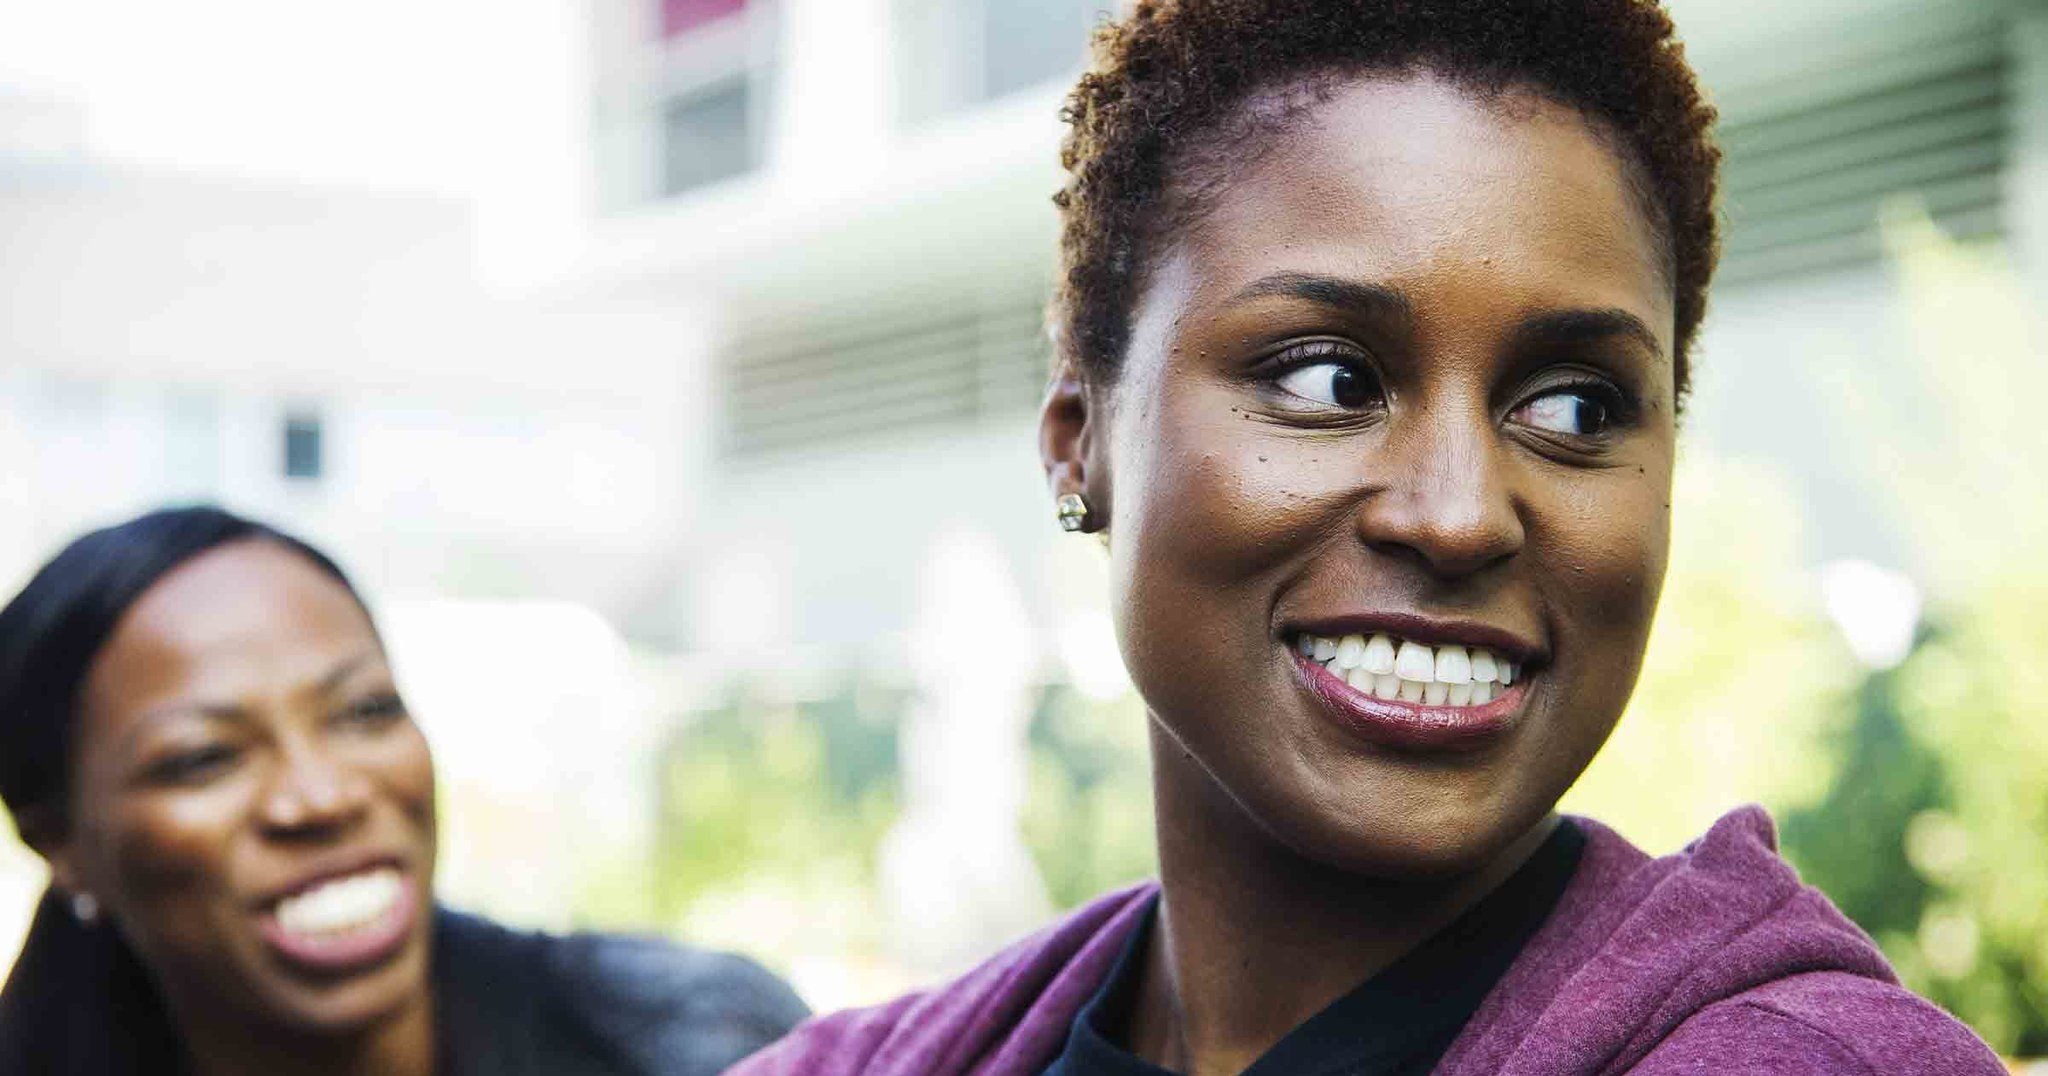 Issa Rae on How She Wrote That Rap: In this interview with WIRED https://t.co/nK6Cp818rU #Culture #Underwire https://t.co/W1FWrXGArR